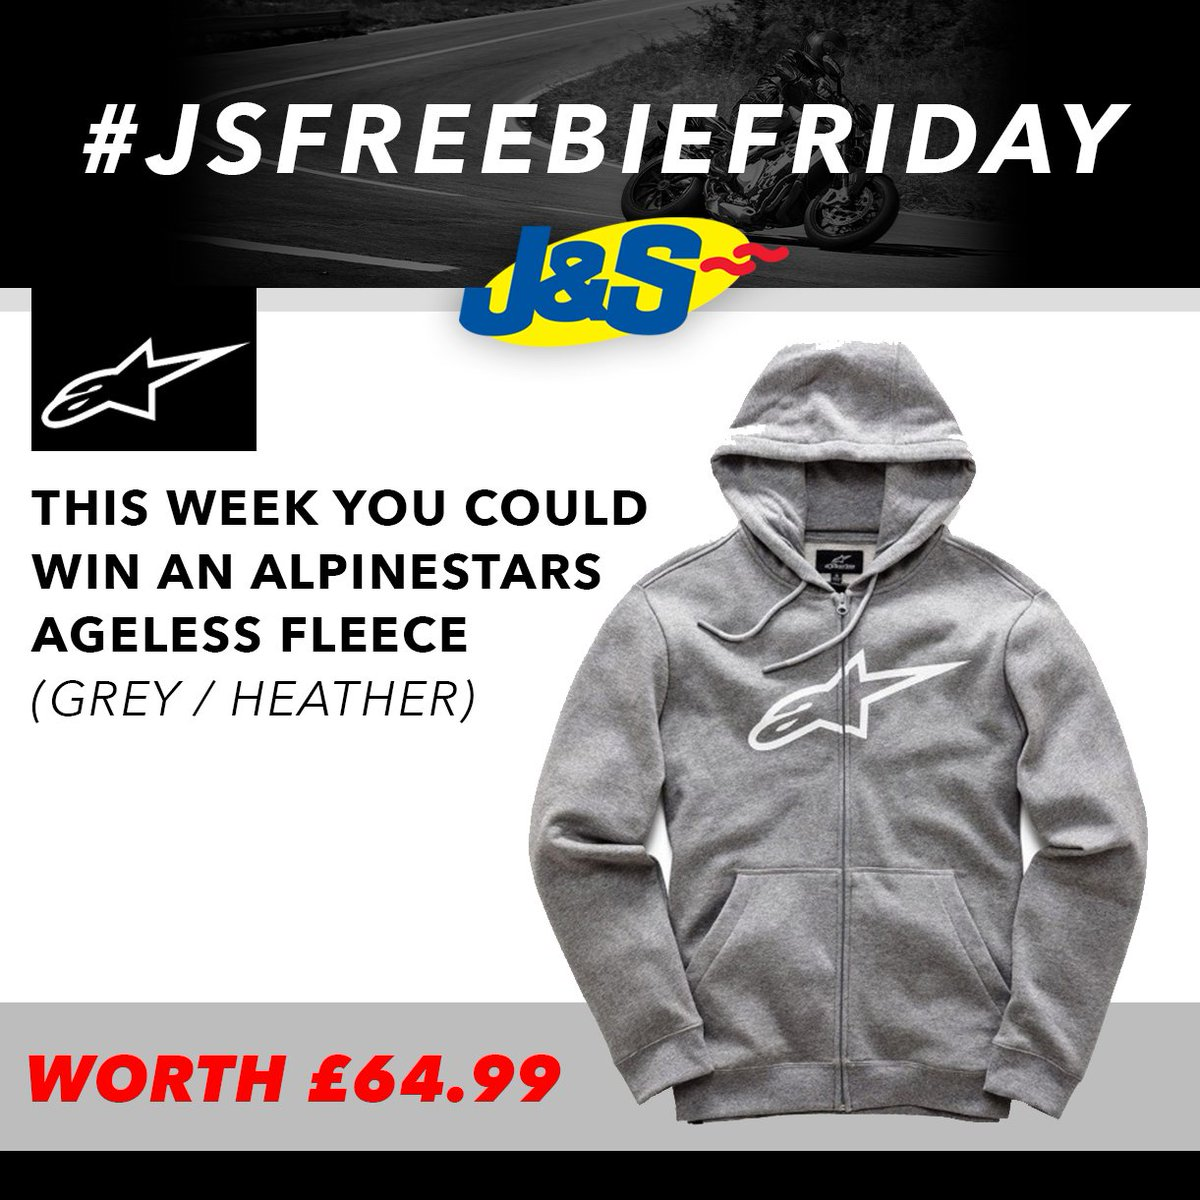 #JSFREEBIEFRIDAY Follow us on Twitter and retweet this post for a chance to win an Alpinestars Ageless Grey Hoodie worth £64.99. Ends Tues July 17th. You can also enter by signing up to our newsletter here:  Happy Friday everyone!